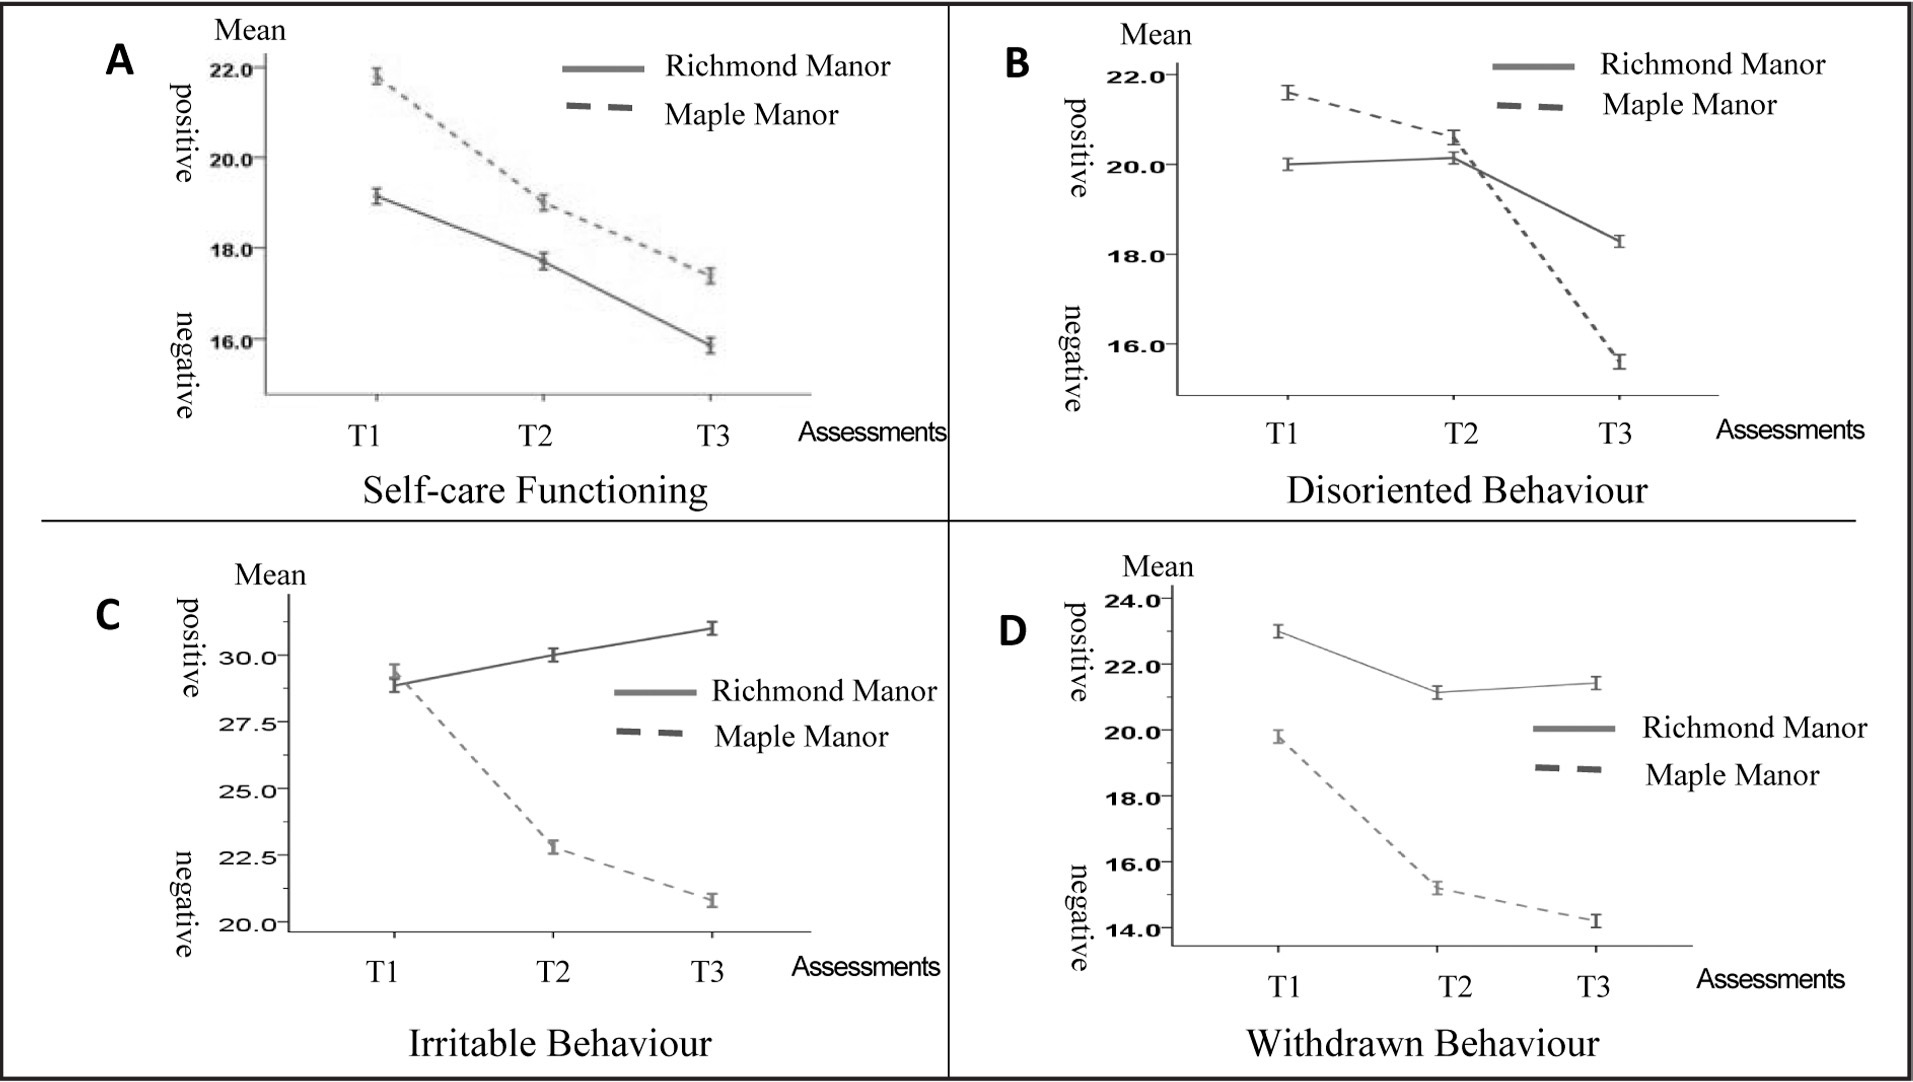 Results of the repeated measures analysis of variance on the Multidimensional Observation Scale for Elderly Subjects. A. Self-care functioning: F2,10 = 5.93**; B. Disoriented behavior: F2,10 = 4.51*; C. Irritable behavior: F2,10 = 4.76†; D. Withdrawn behavior: F2,10 = 6.72**. *p < 0.05; **p < 0.01, within-unit comparisons; †p < 0.05, between-unit comparisons.